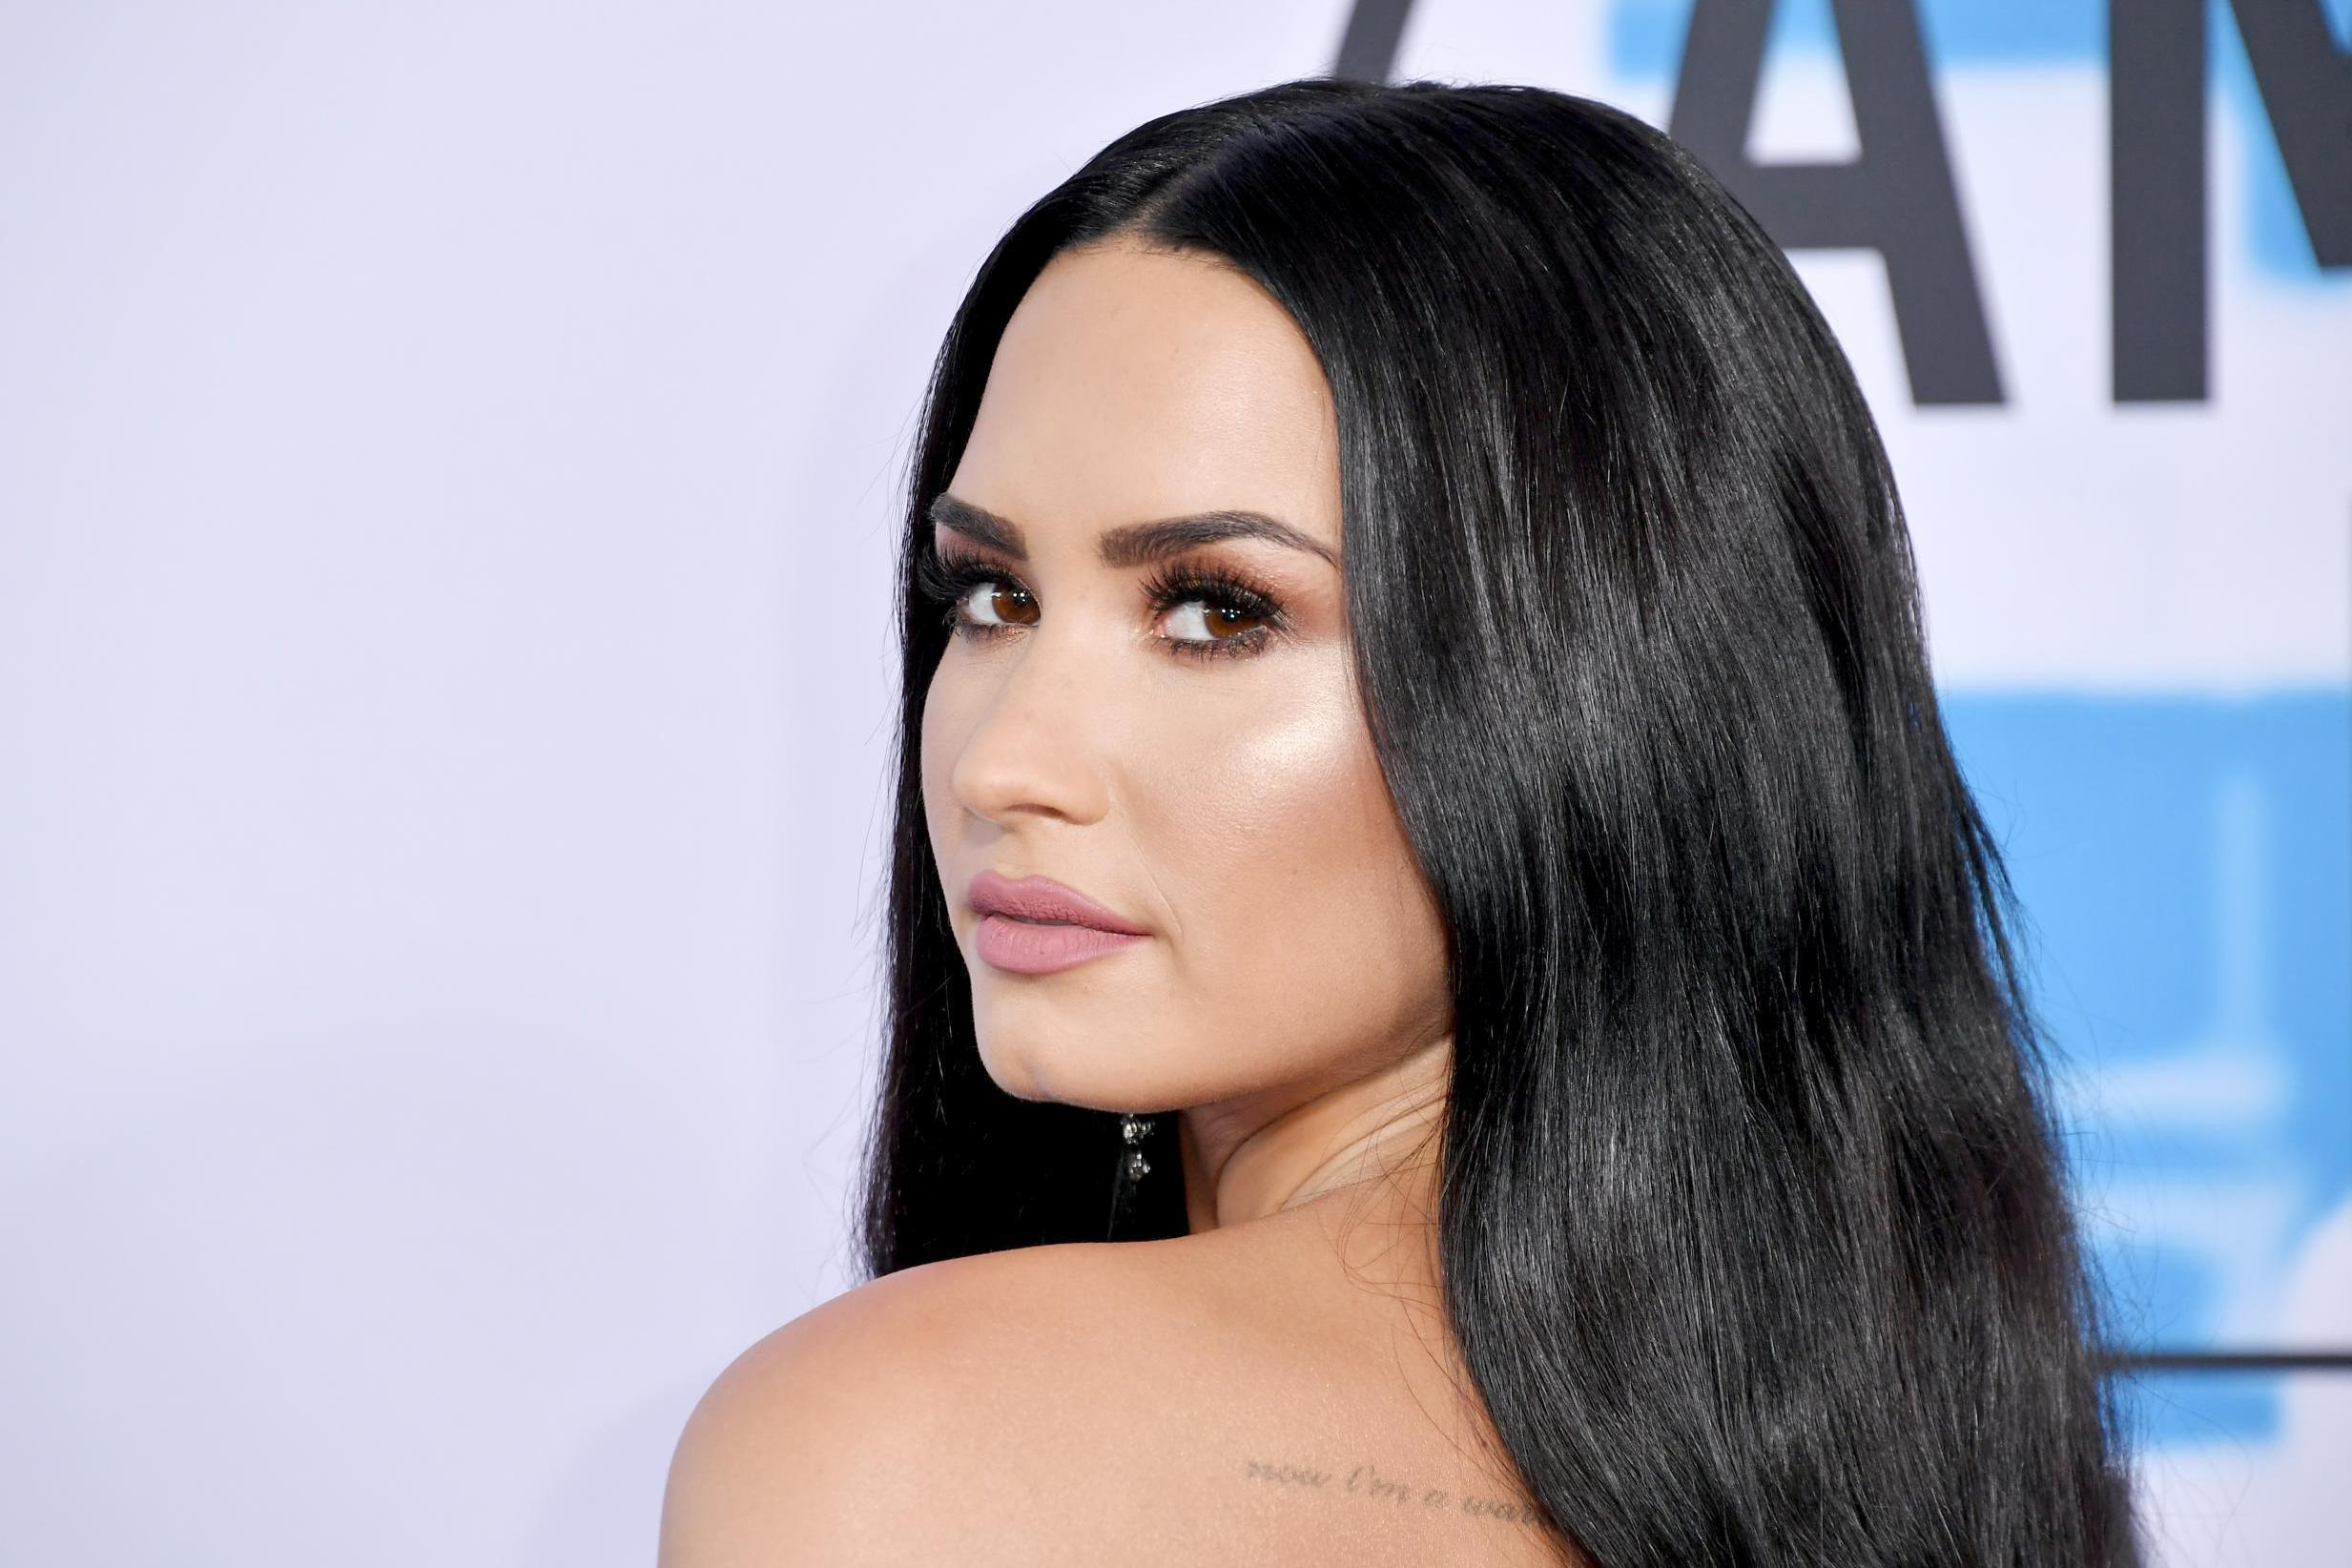 Demi Lovato Taken To Hospital After Reported Drug Overdose The